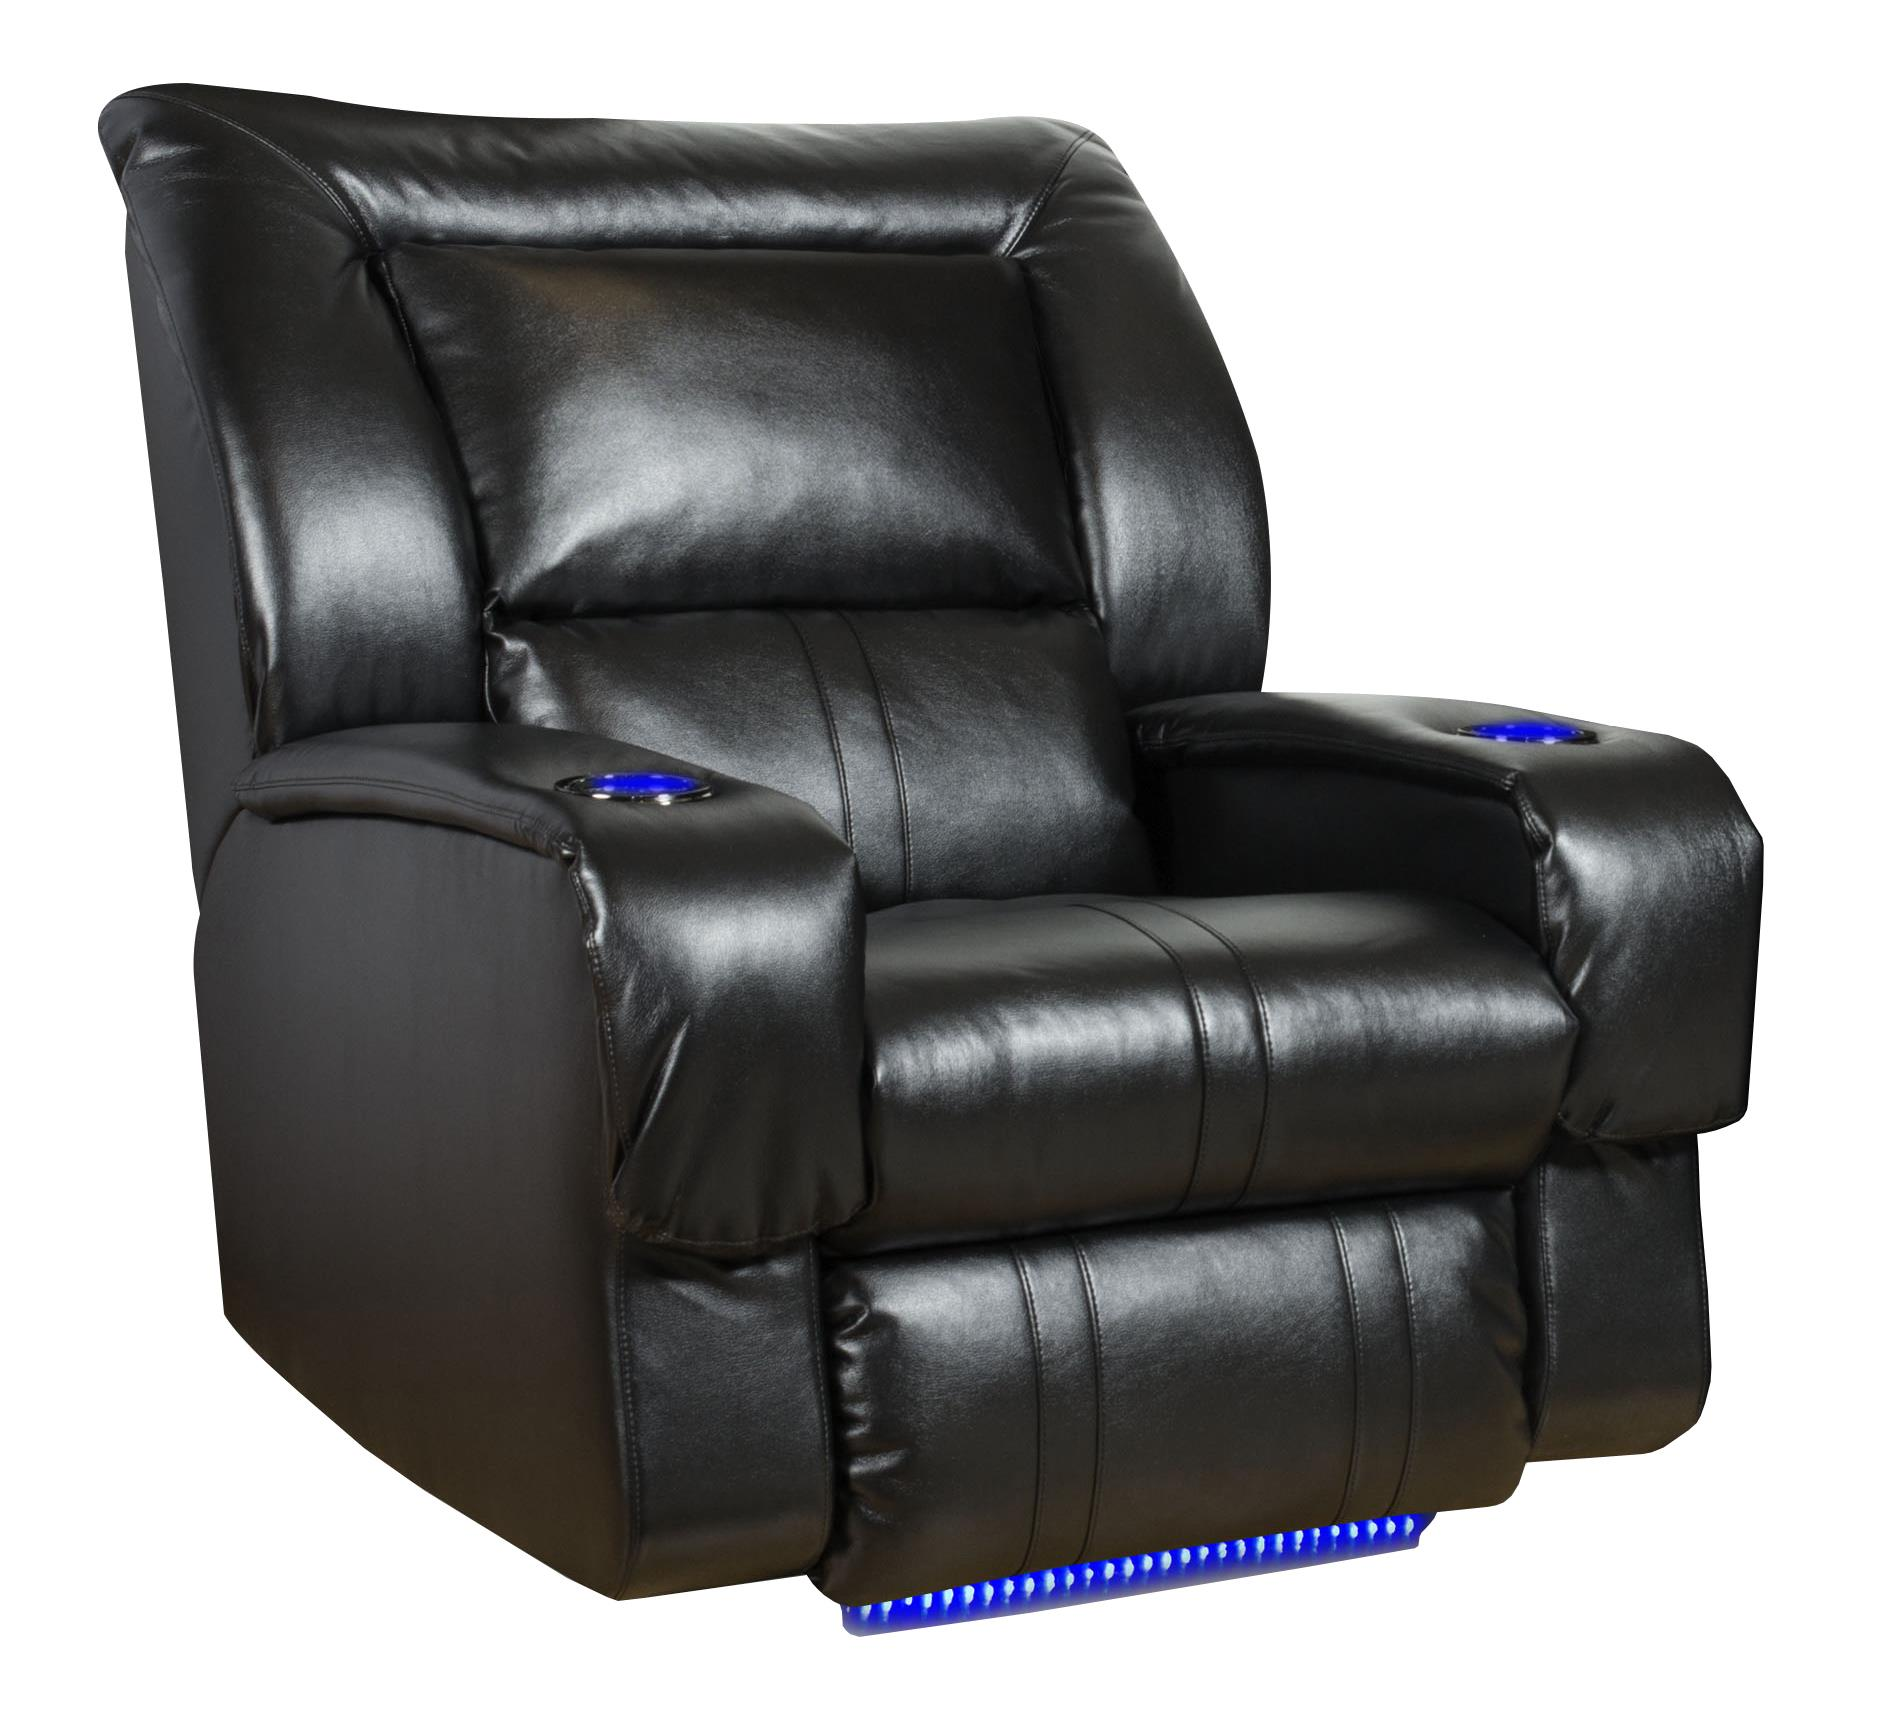 Wall Hugger Recliner w/ Lights & Cup Holders